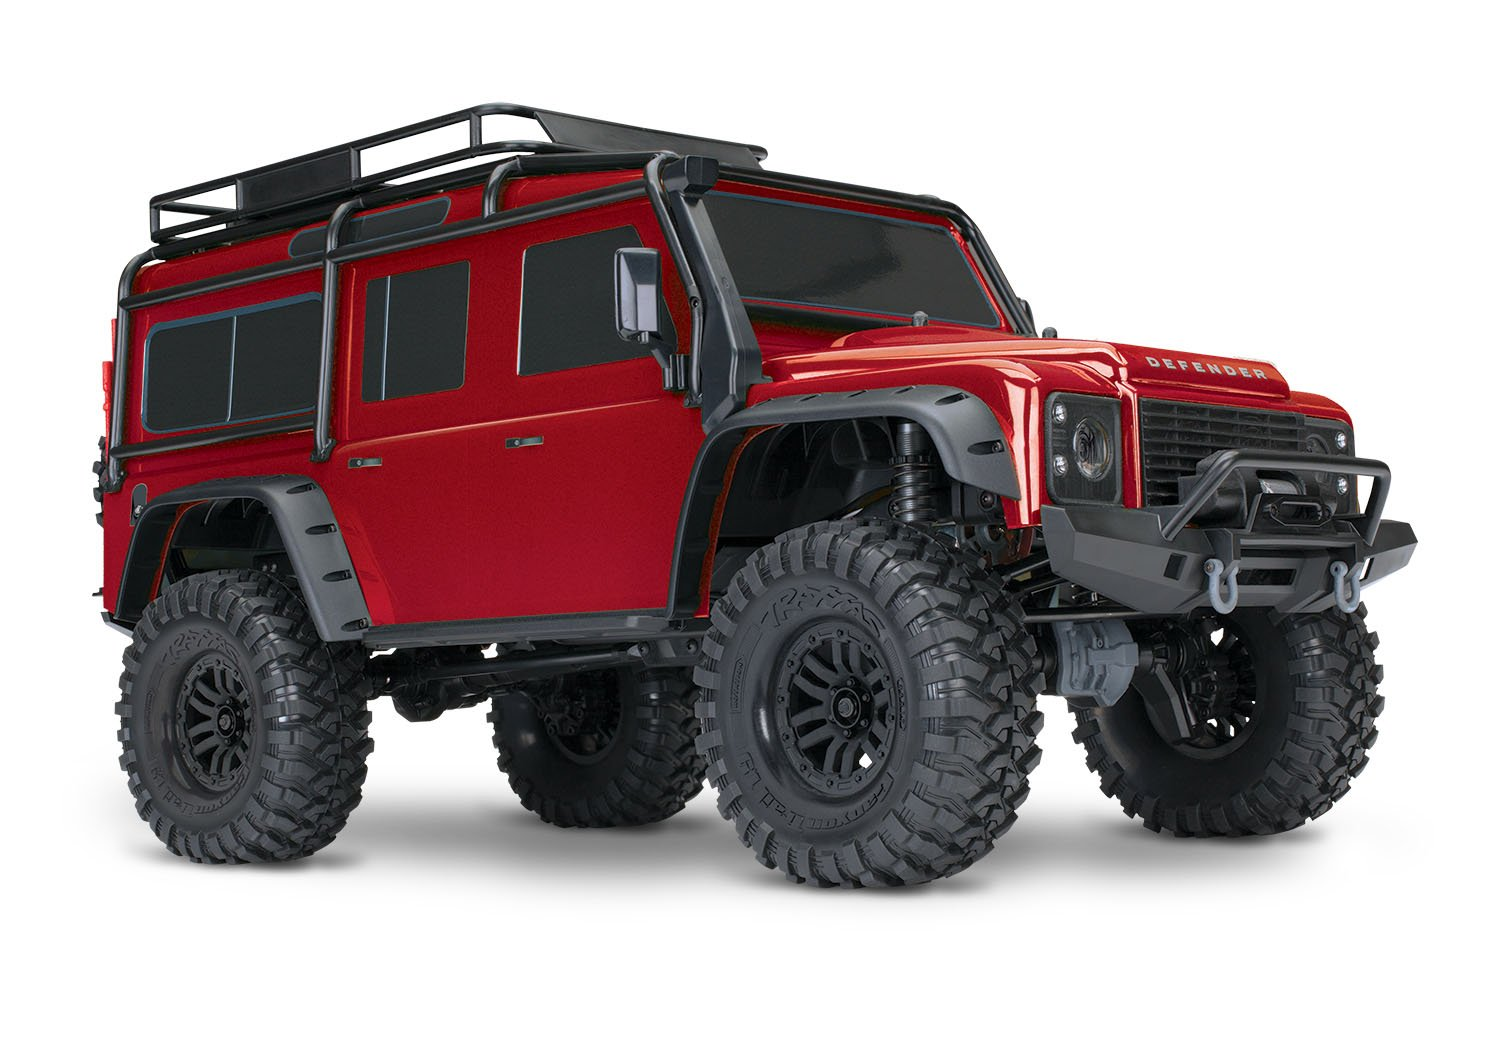 Traxxas 1 10 Scale Trx 4 And Trail Crawler With Tips On Powering Rc Servos Receivers Radios Vehicles Lipos 24ghz Tqi Radio Red Toys Games